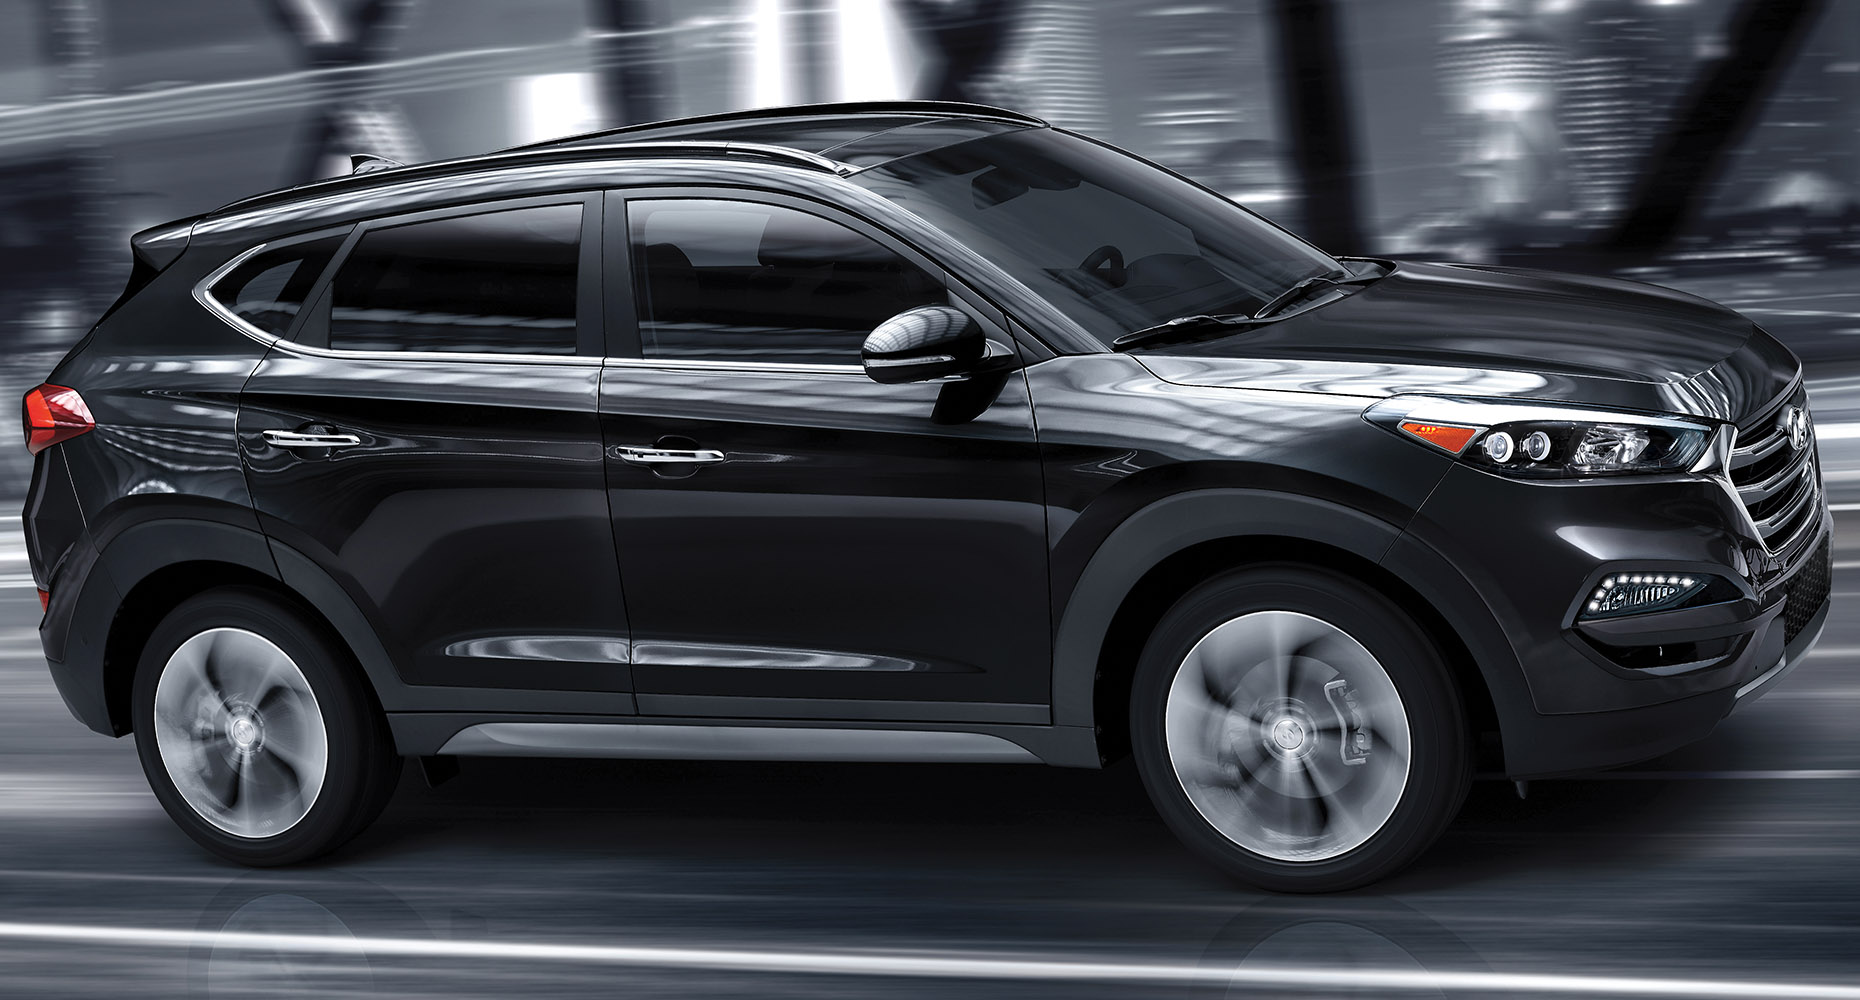 tucson is here by official magazine hyundai to car the news pictures first new tuscon qashqai challenge dominance